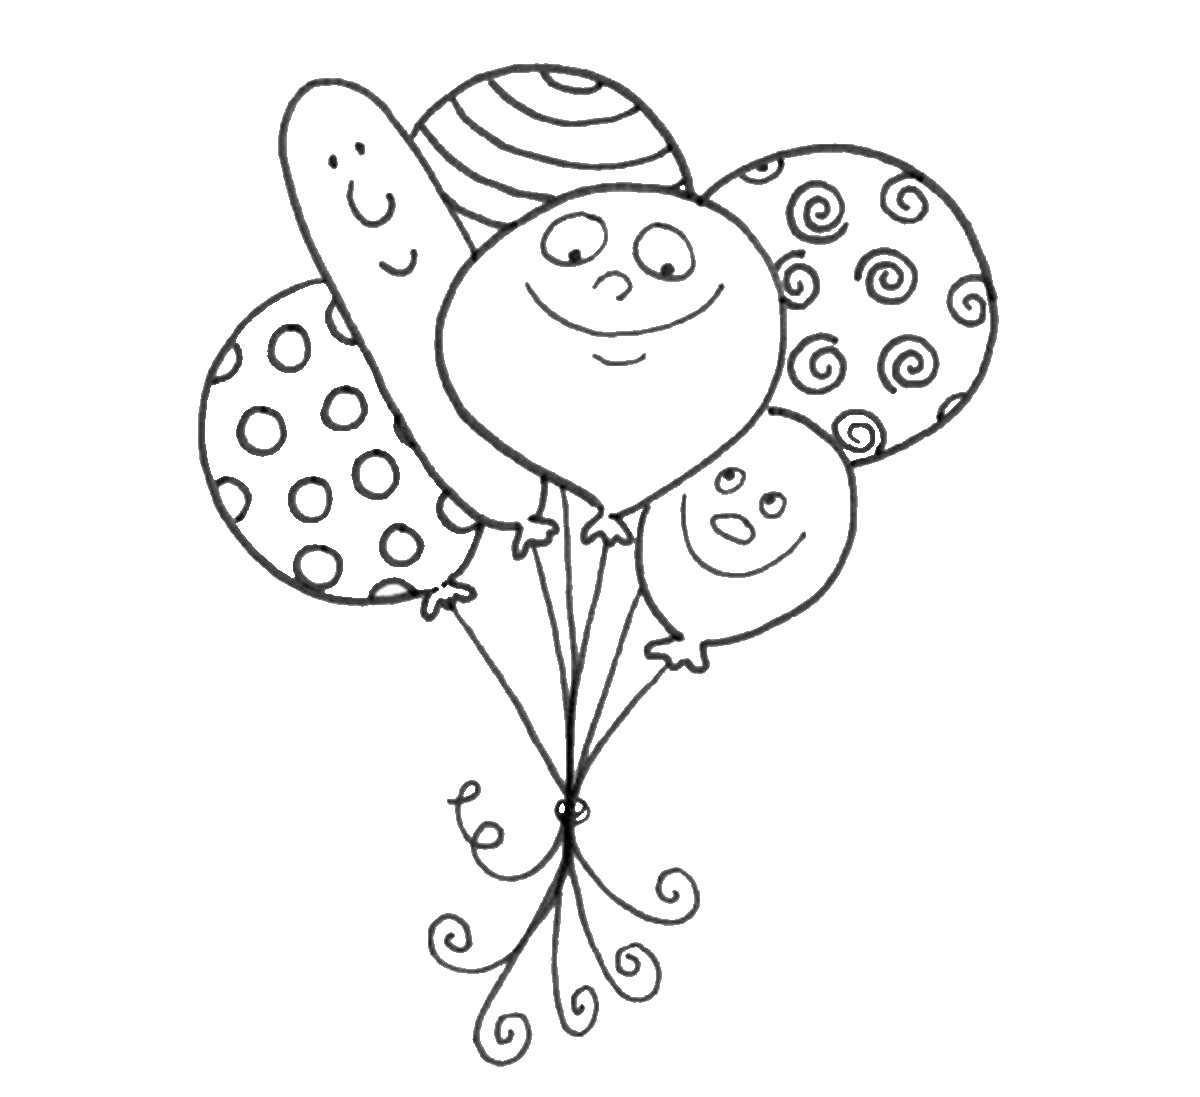 coloring balloon drawing for kids balloon coloring pages best coloring pages for kids kids balloon for drawing coloring